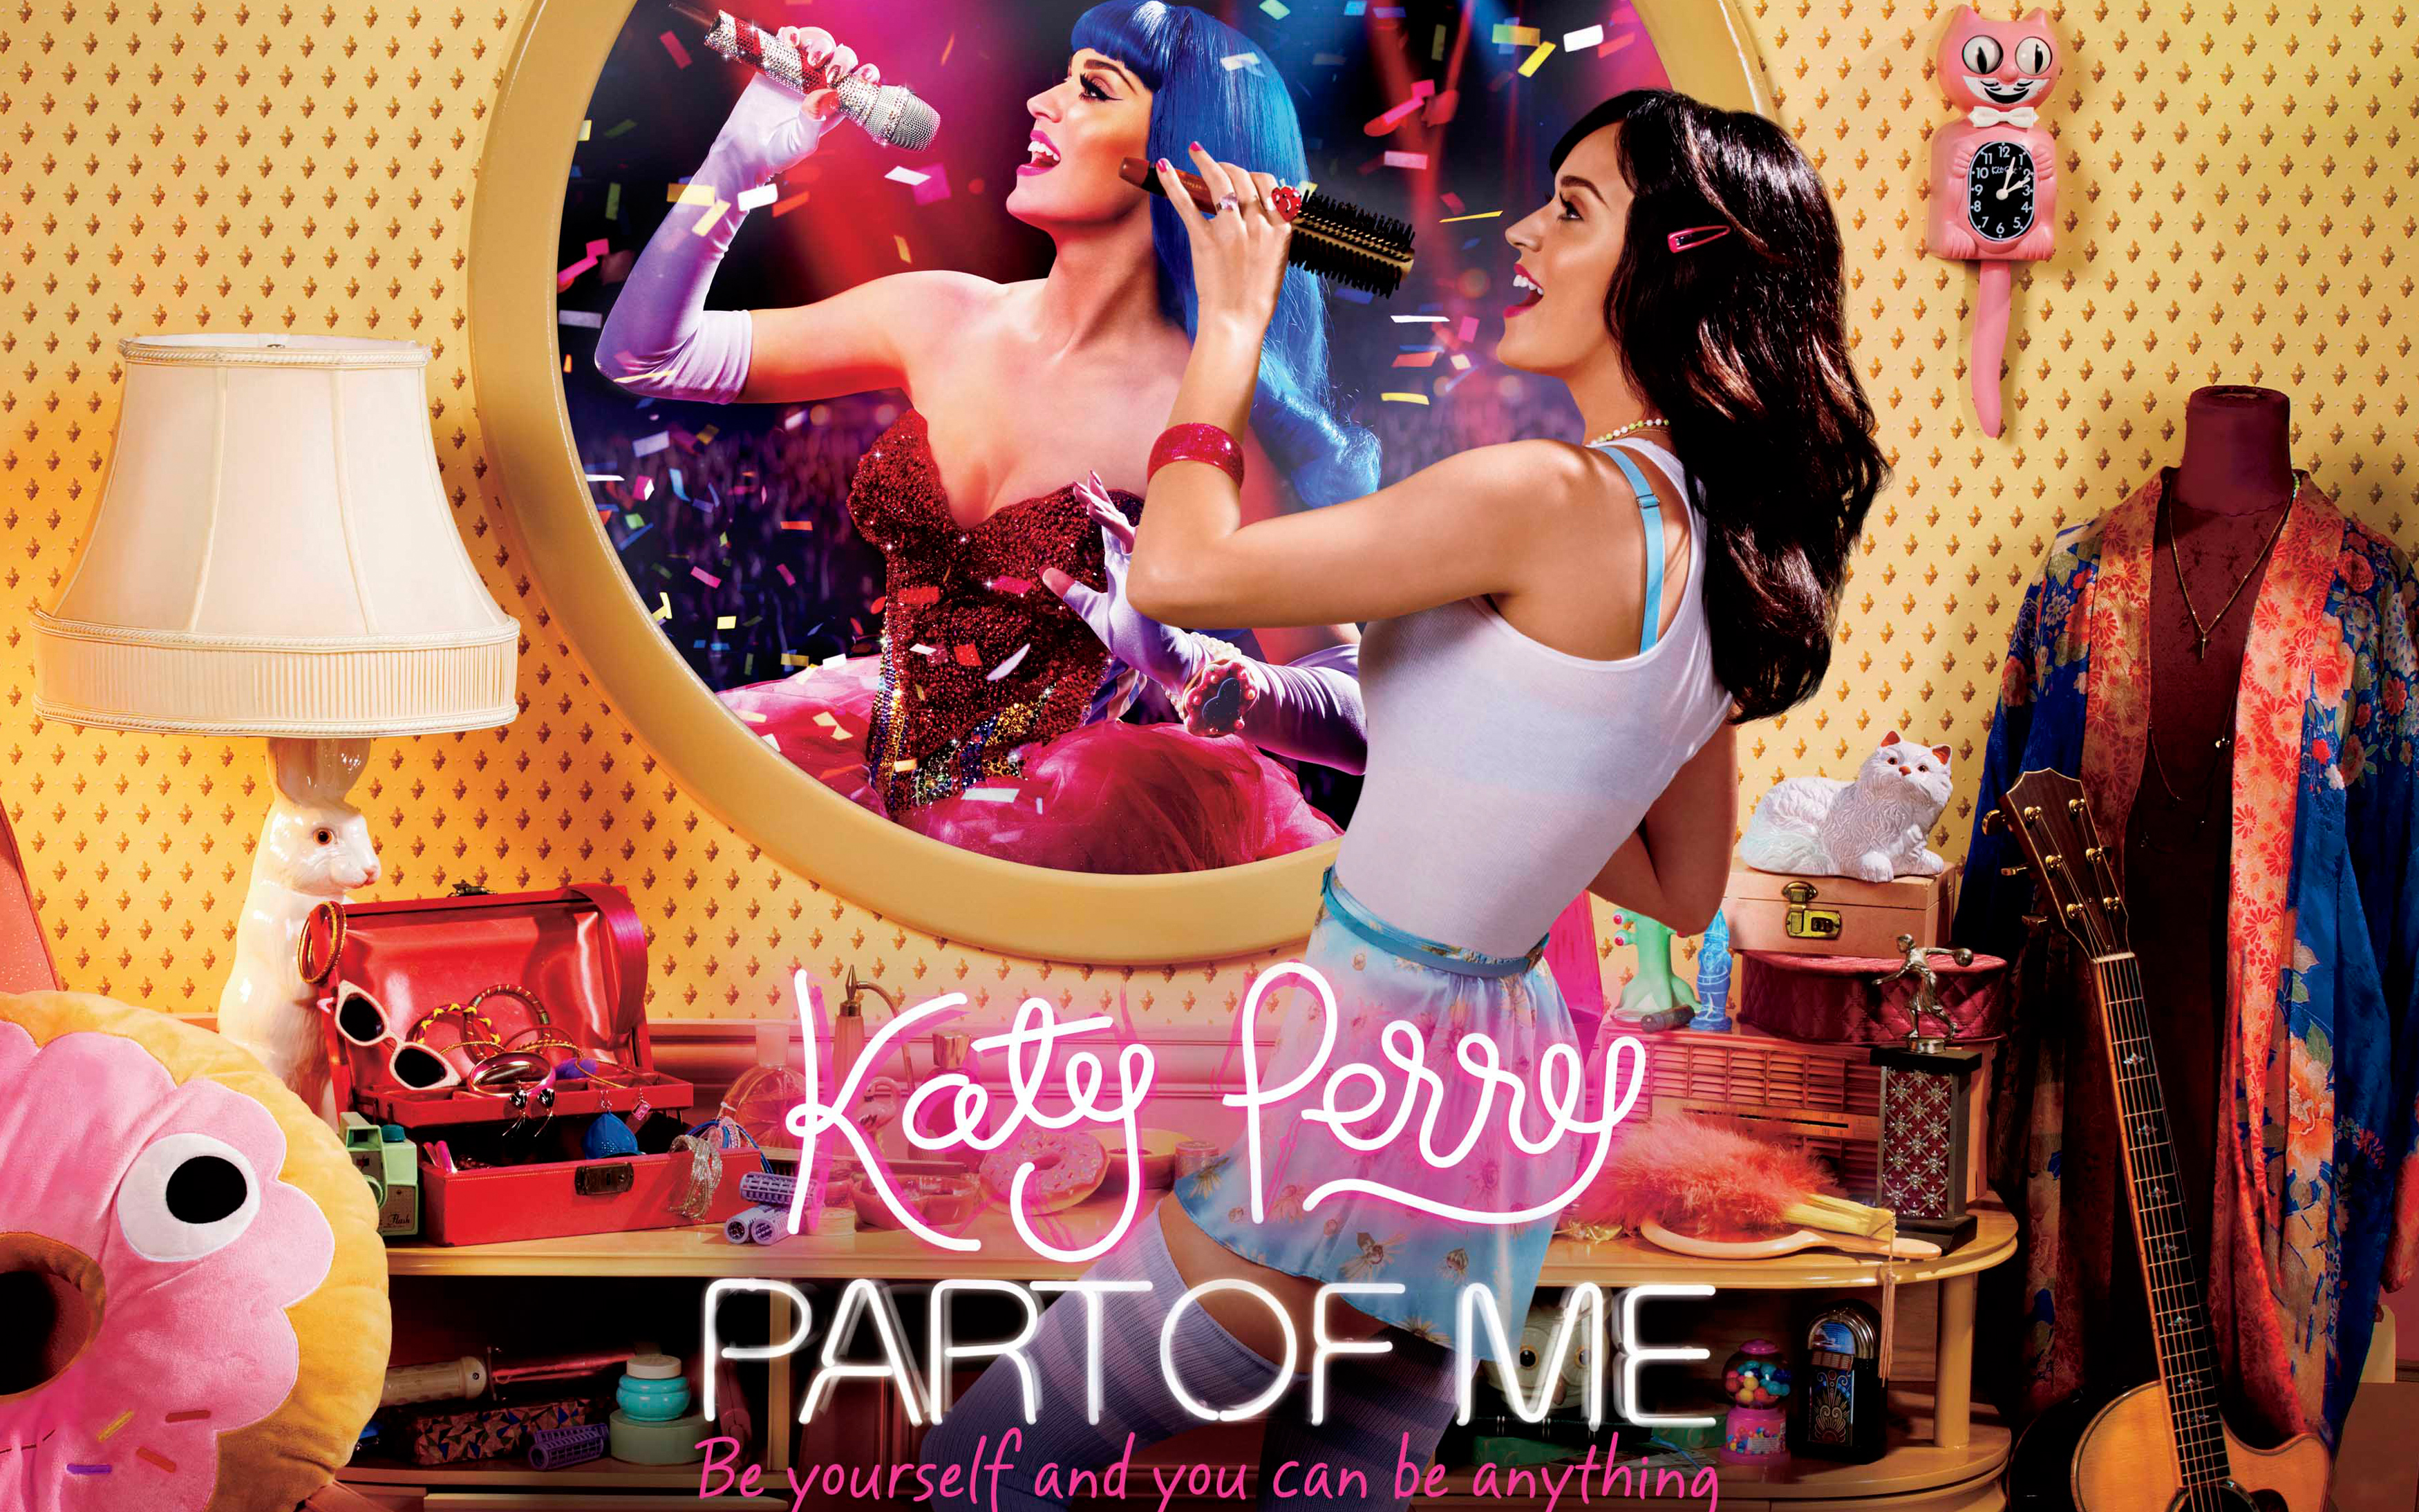 2012 Katy Perry Part of Me wallpaper